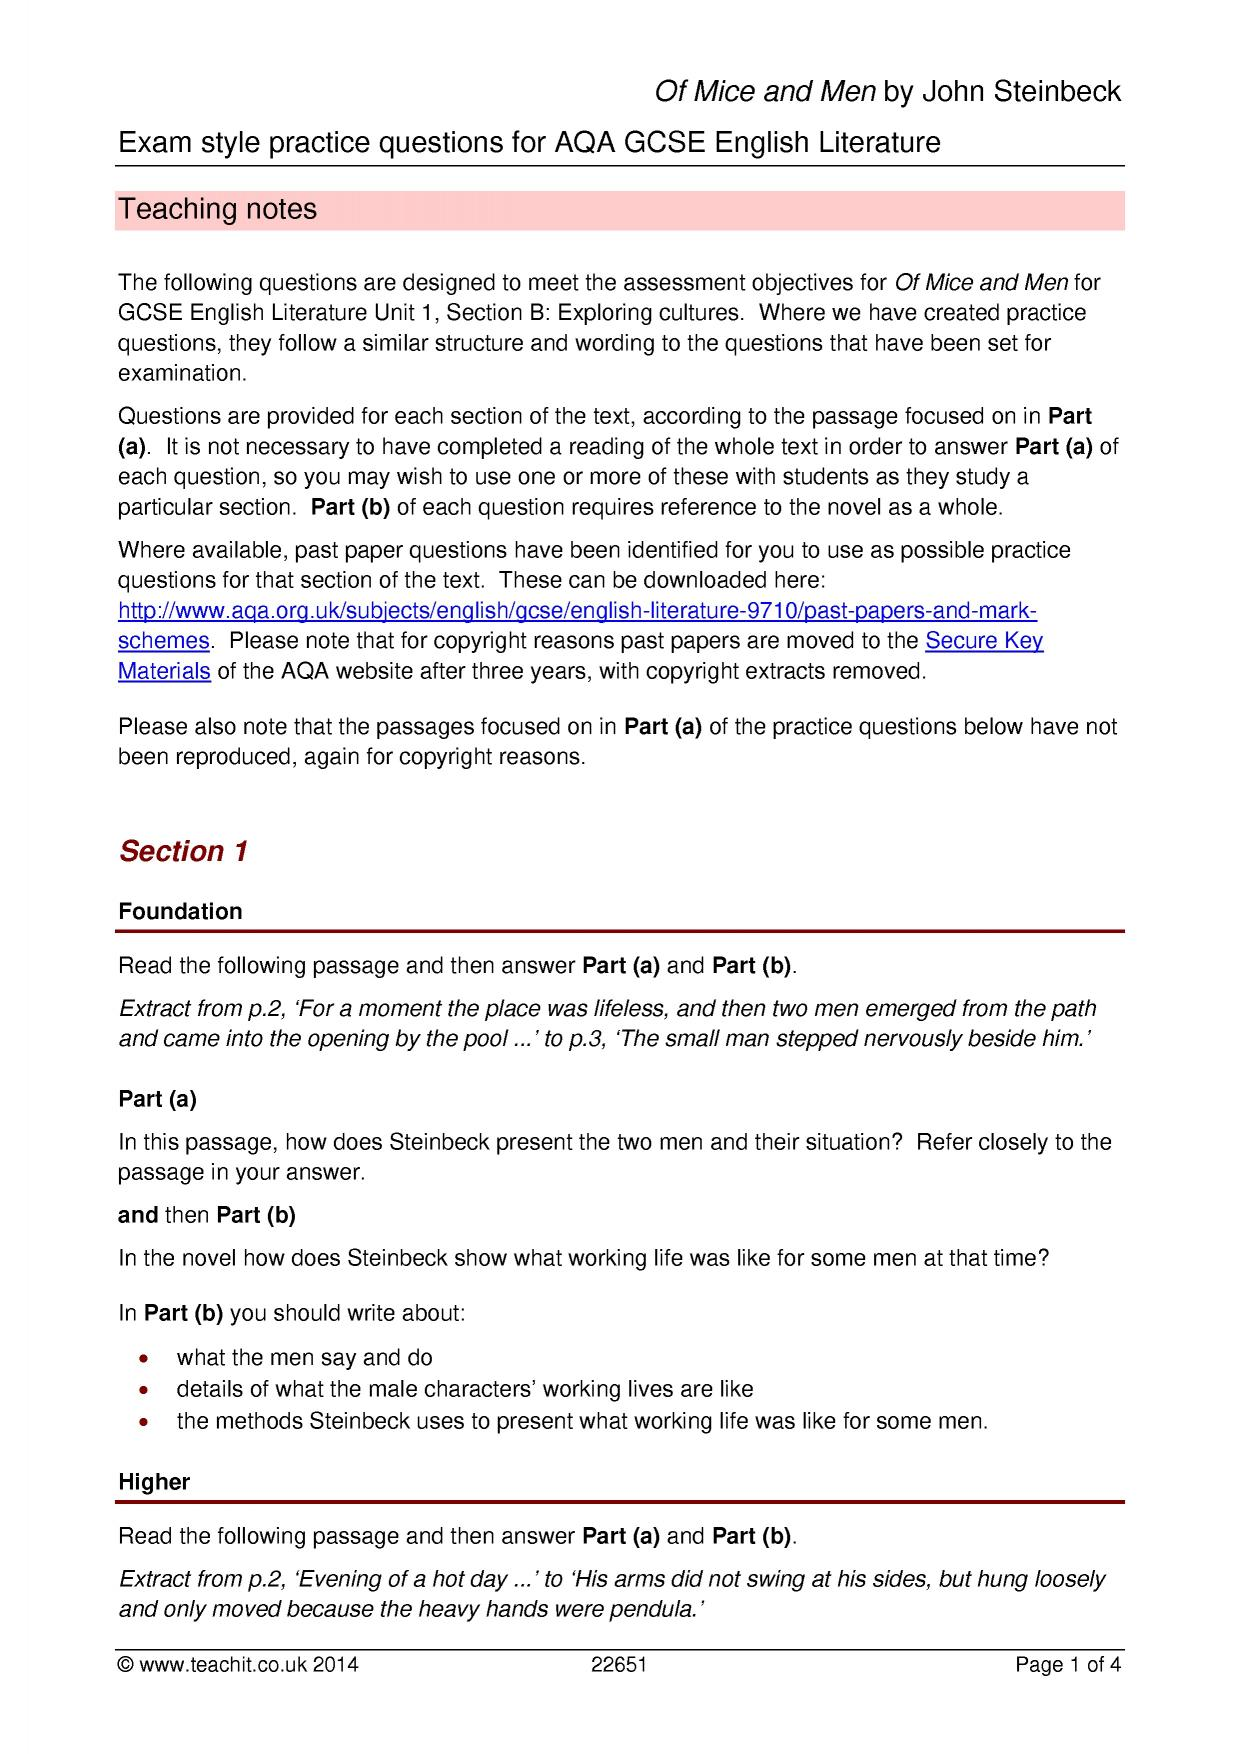 aqa german gcse coursework mark scheme Extracts from the sams from aqa with the mark scheme to help staff and pupils  understand the new  aqa gcse written coursework self-assessment sheet   peer assessment for module 1 of aqa french spanish or german gcse.